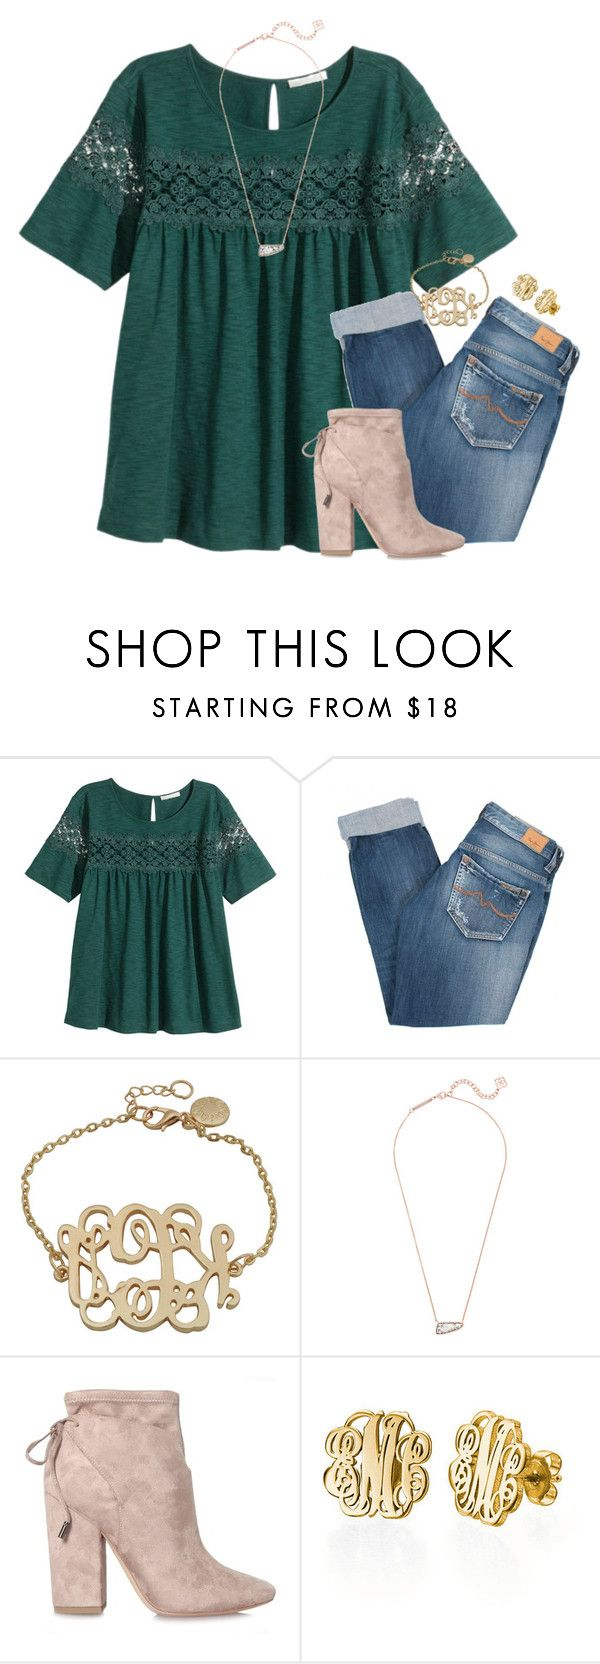 """""""Happy Birthday Jesus! I'm so glad it's Christmas!"""" by amberfmillard-1 ❤ liked on Polyvore featuring H&M, Pepe Jeans London, Kendra Scott and Kendall + Kylie"""